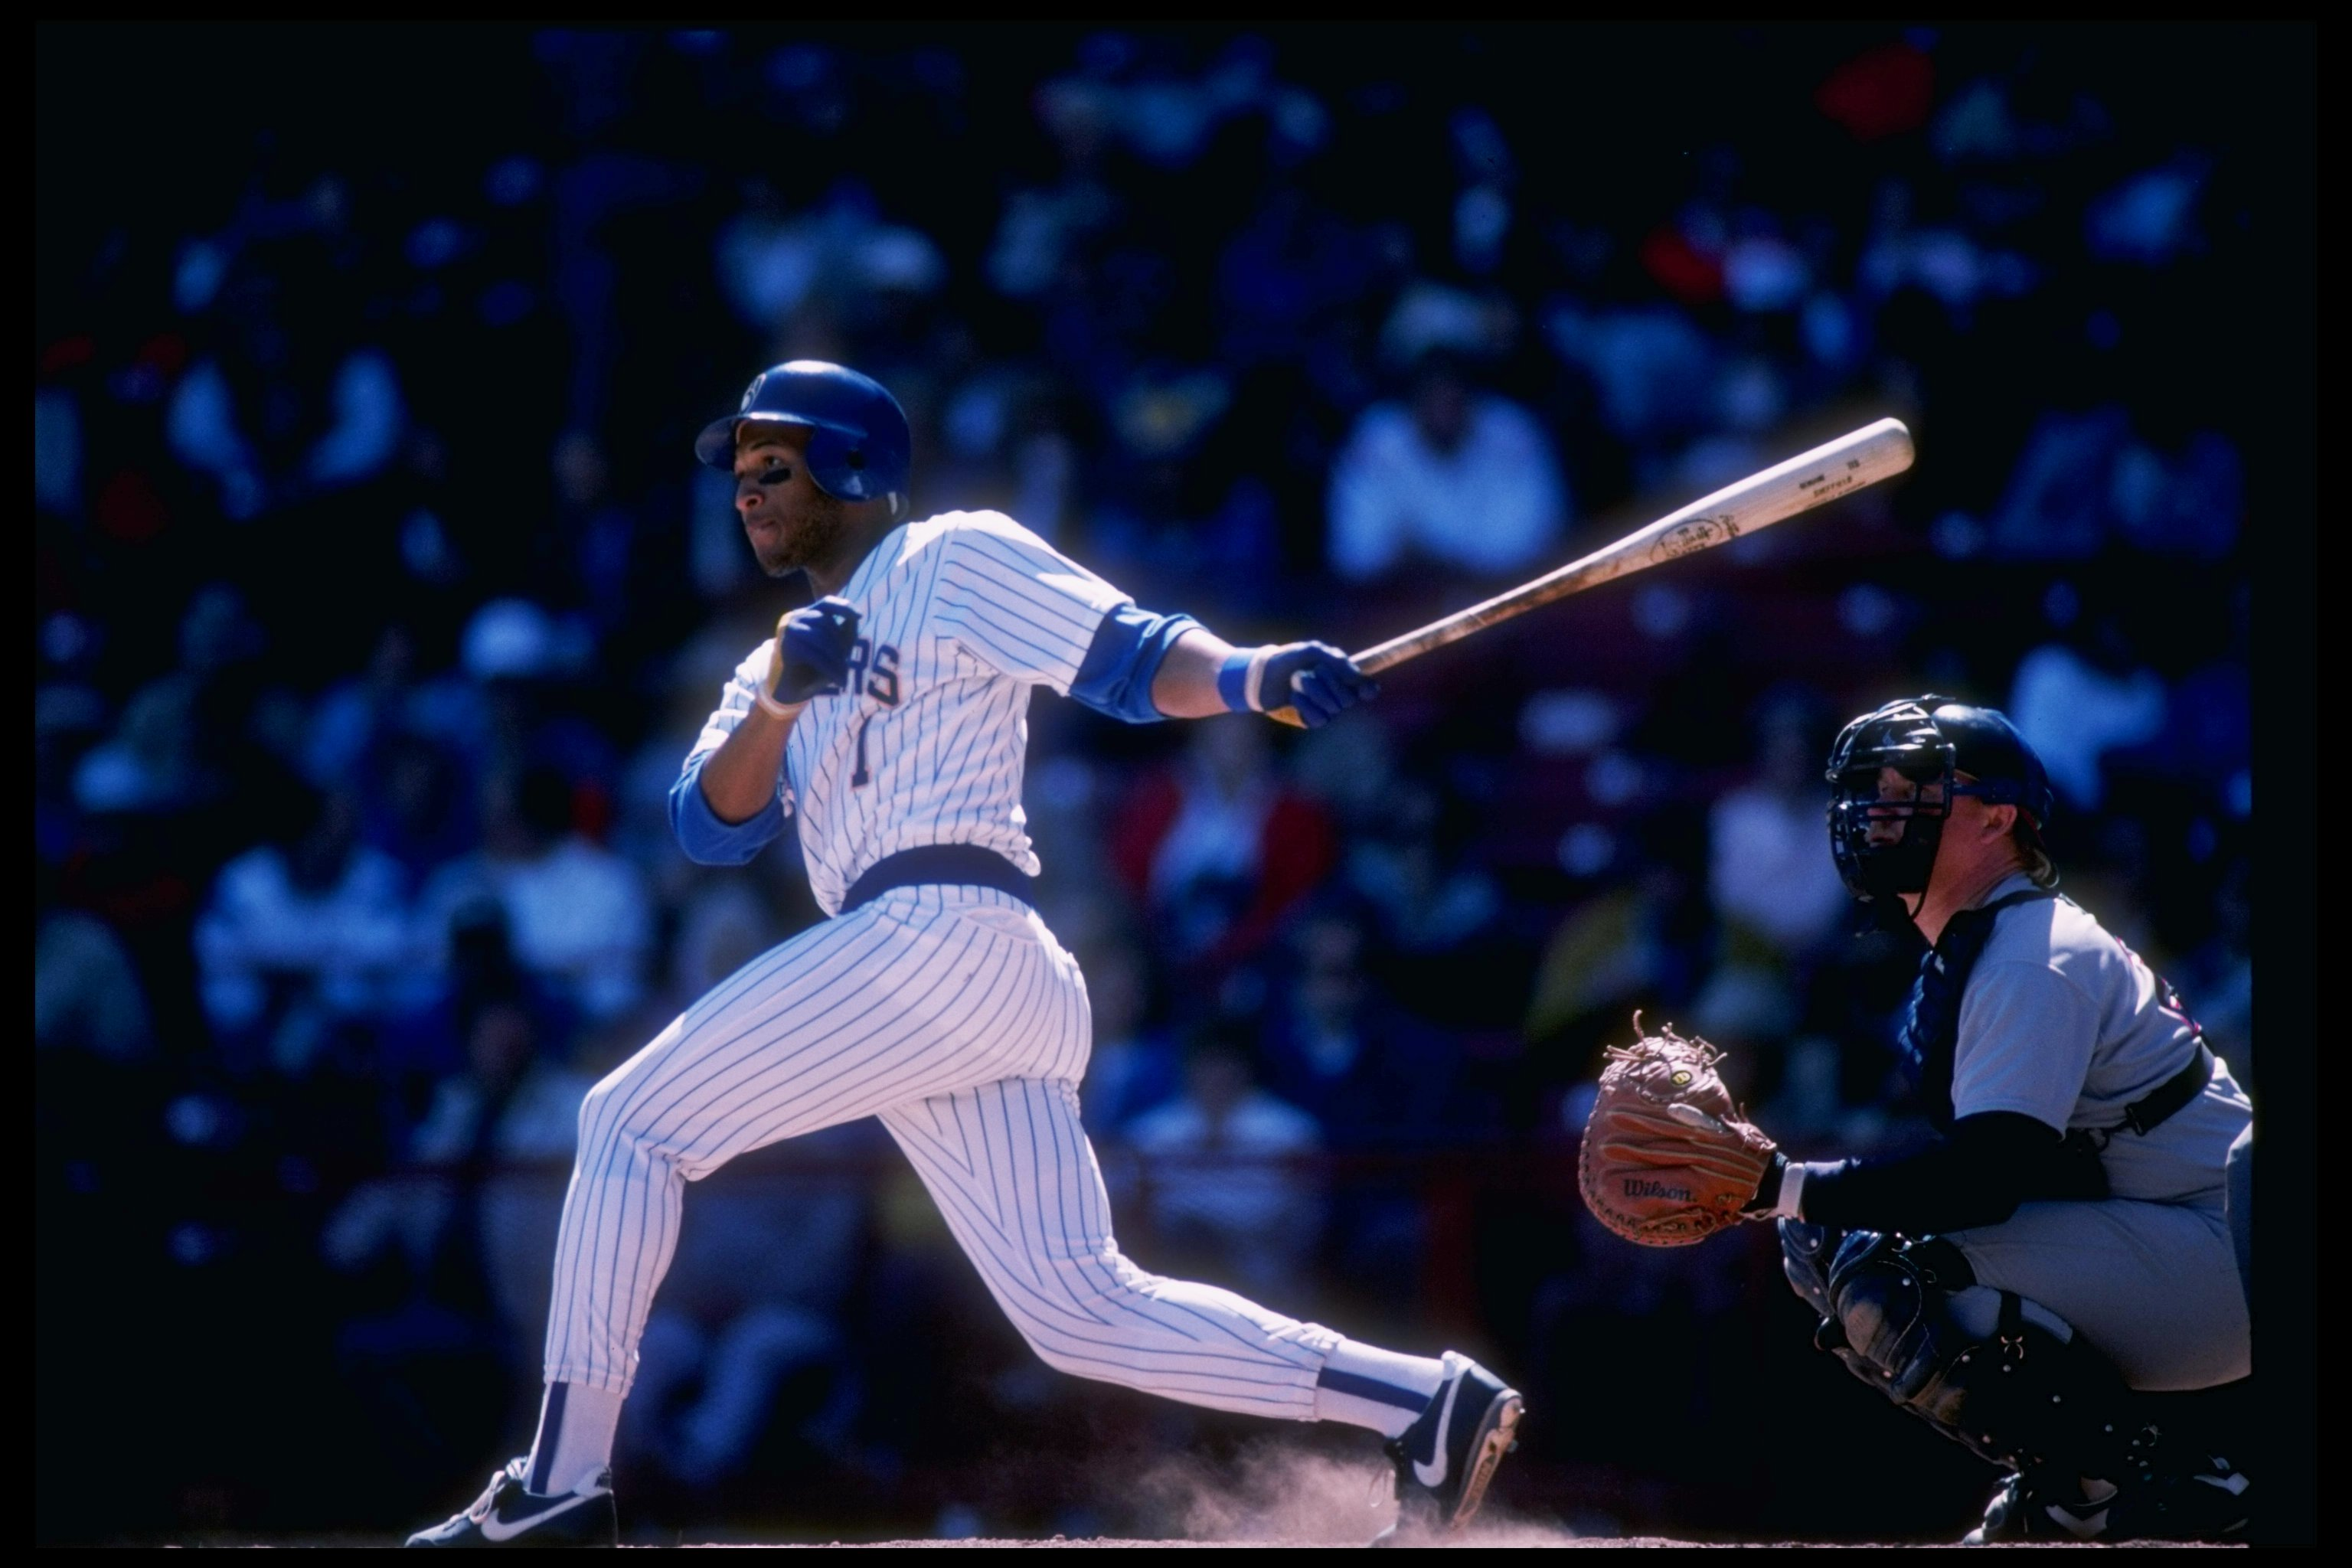 1988:  Outfielder Gary Sheffield of the Milwaukee Brewers swings the bat. Mandatory Credit: Allsport  /Allsport